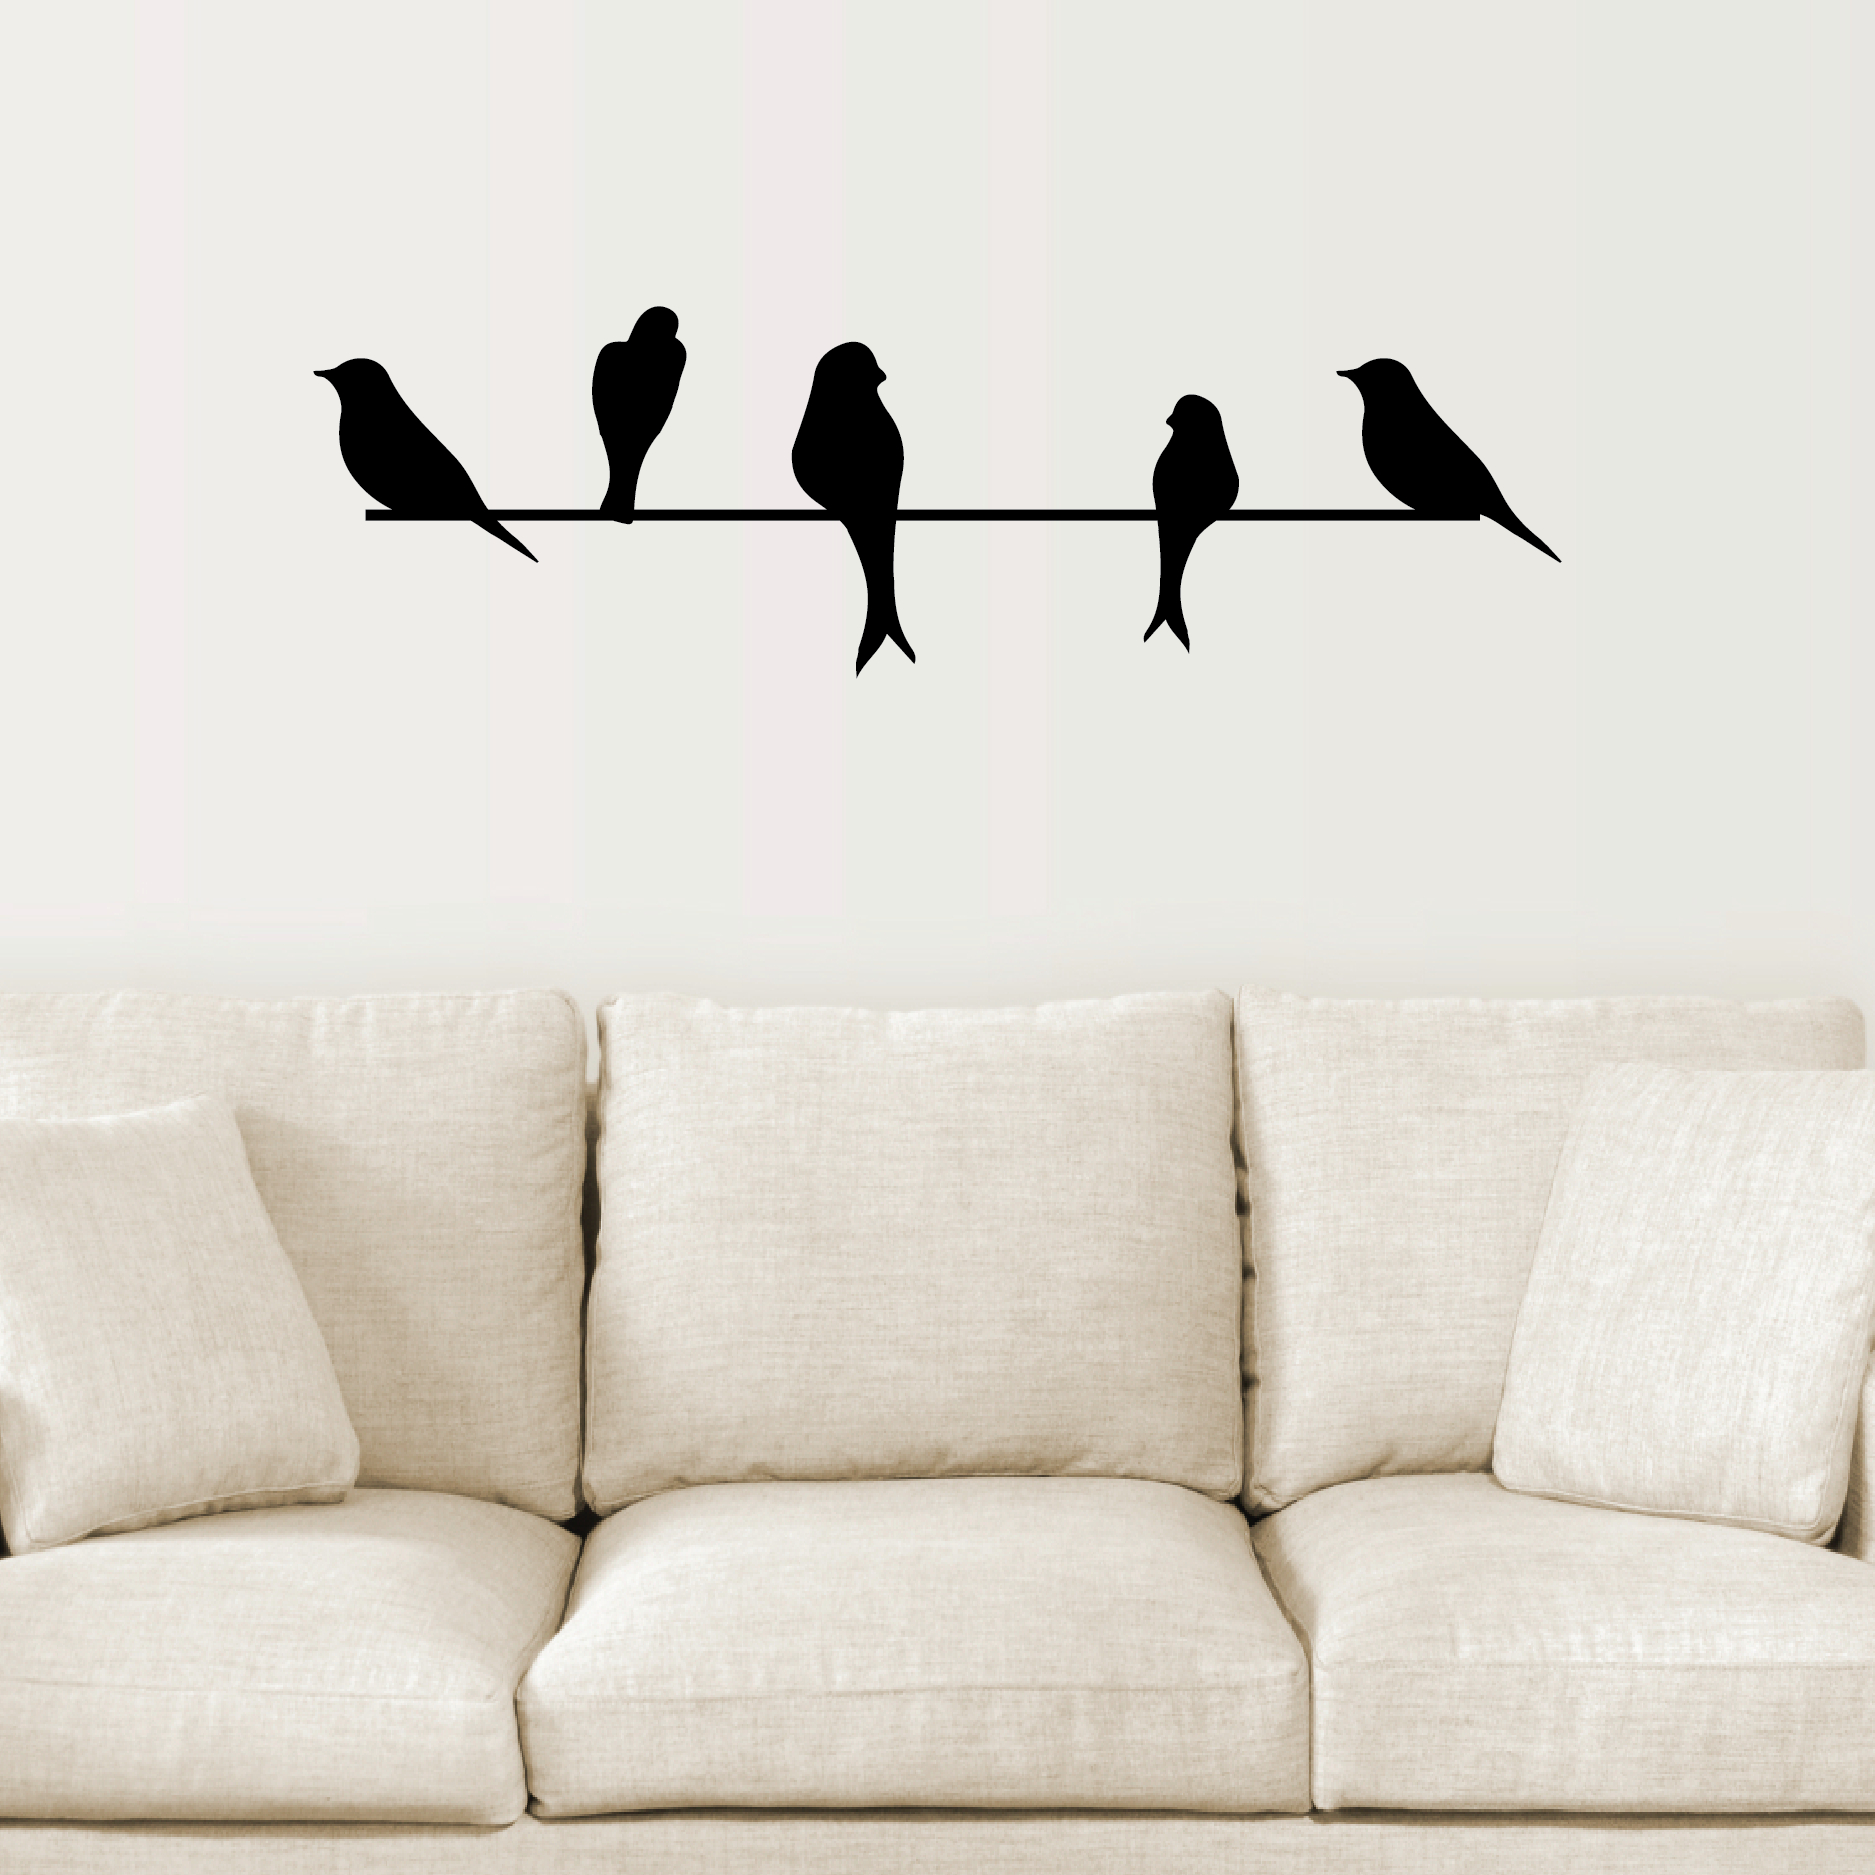 Birds On A Wire Wall Quotes™ Wall Art Decal | Wallquotes with regard to Birds On A Wire Wall Decor (Image 14 of 30)